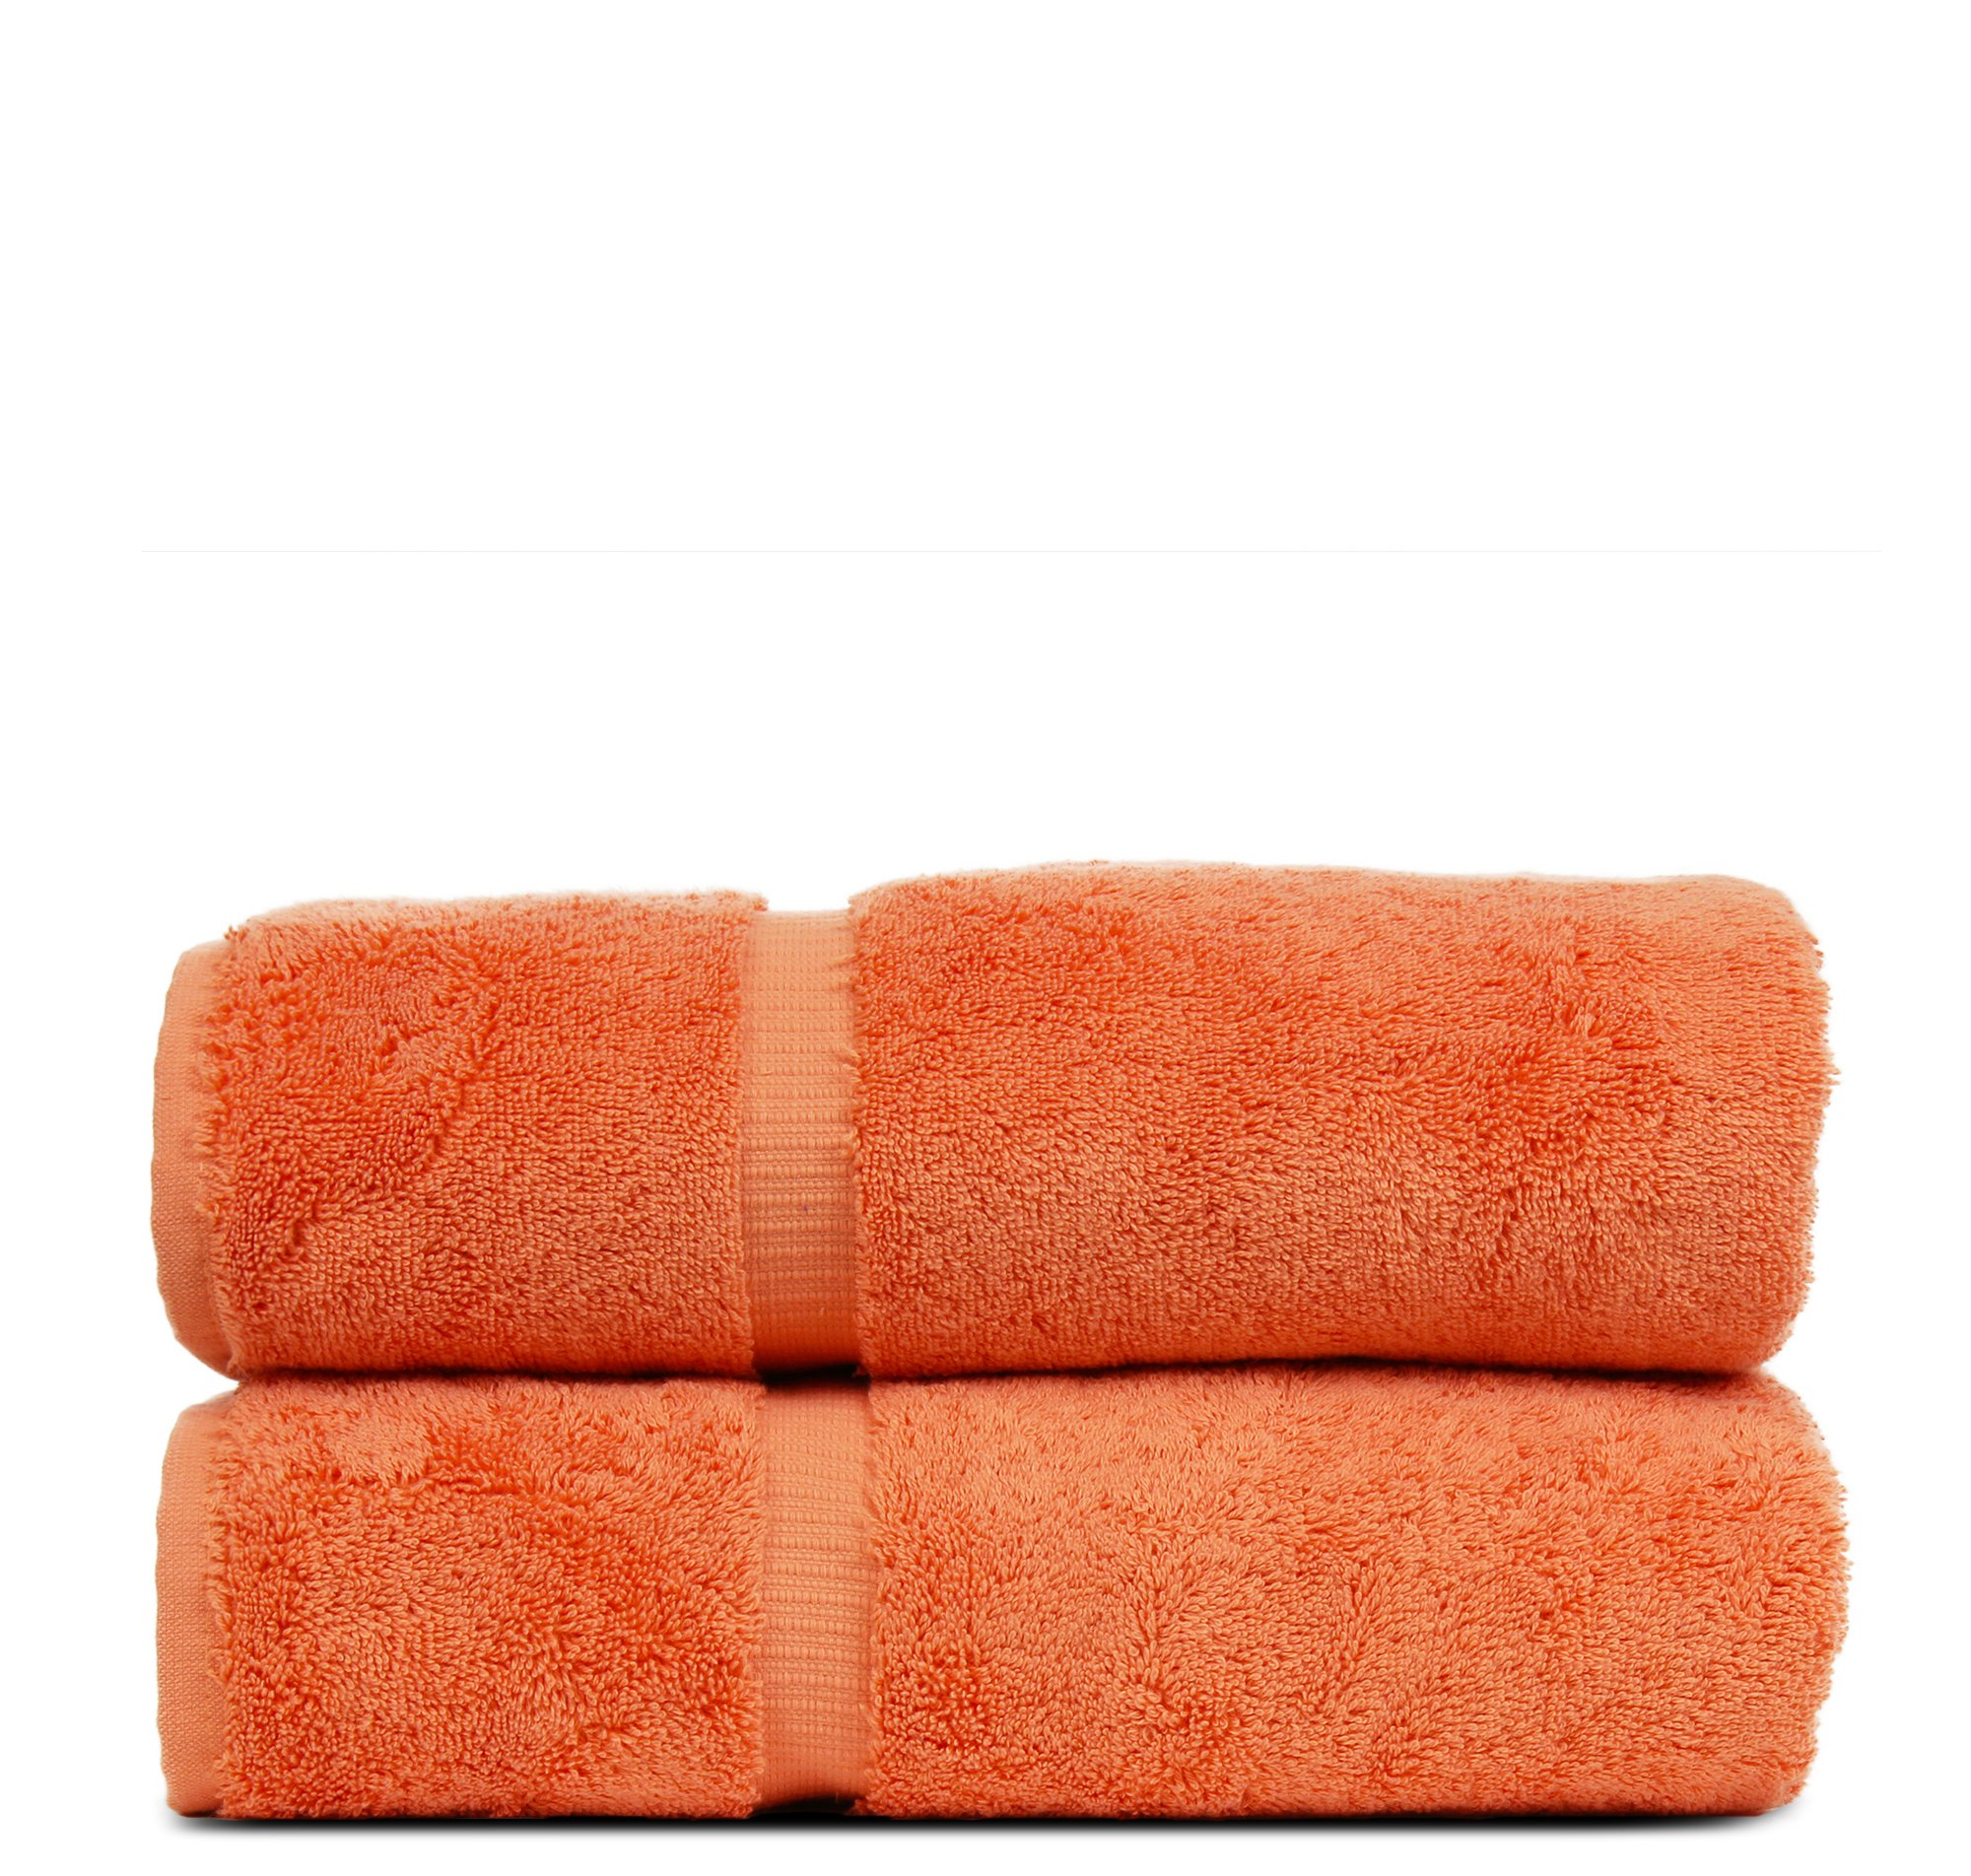 BC BARE COTTON Luxury Hotel & Spa Towel Turkish Cotton Bath Towels - Coral - Dobby Border - Set of 2